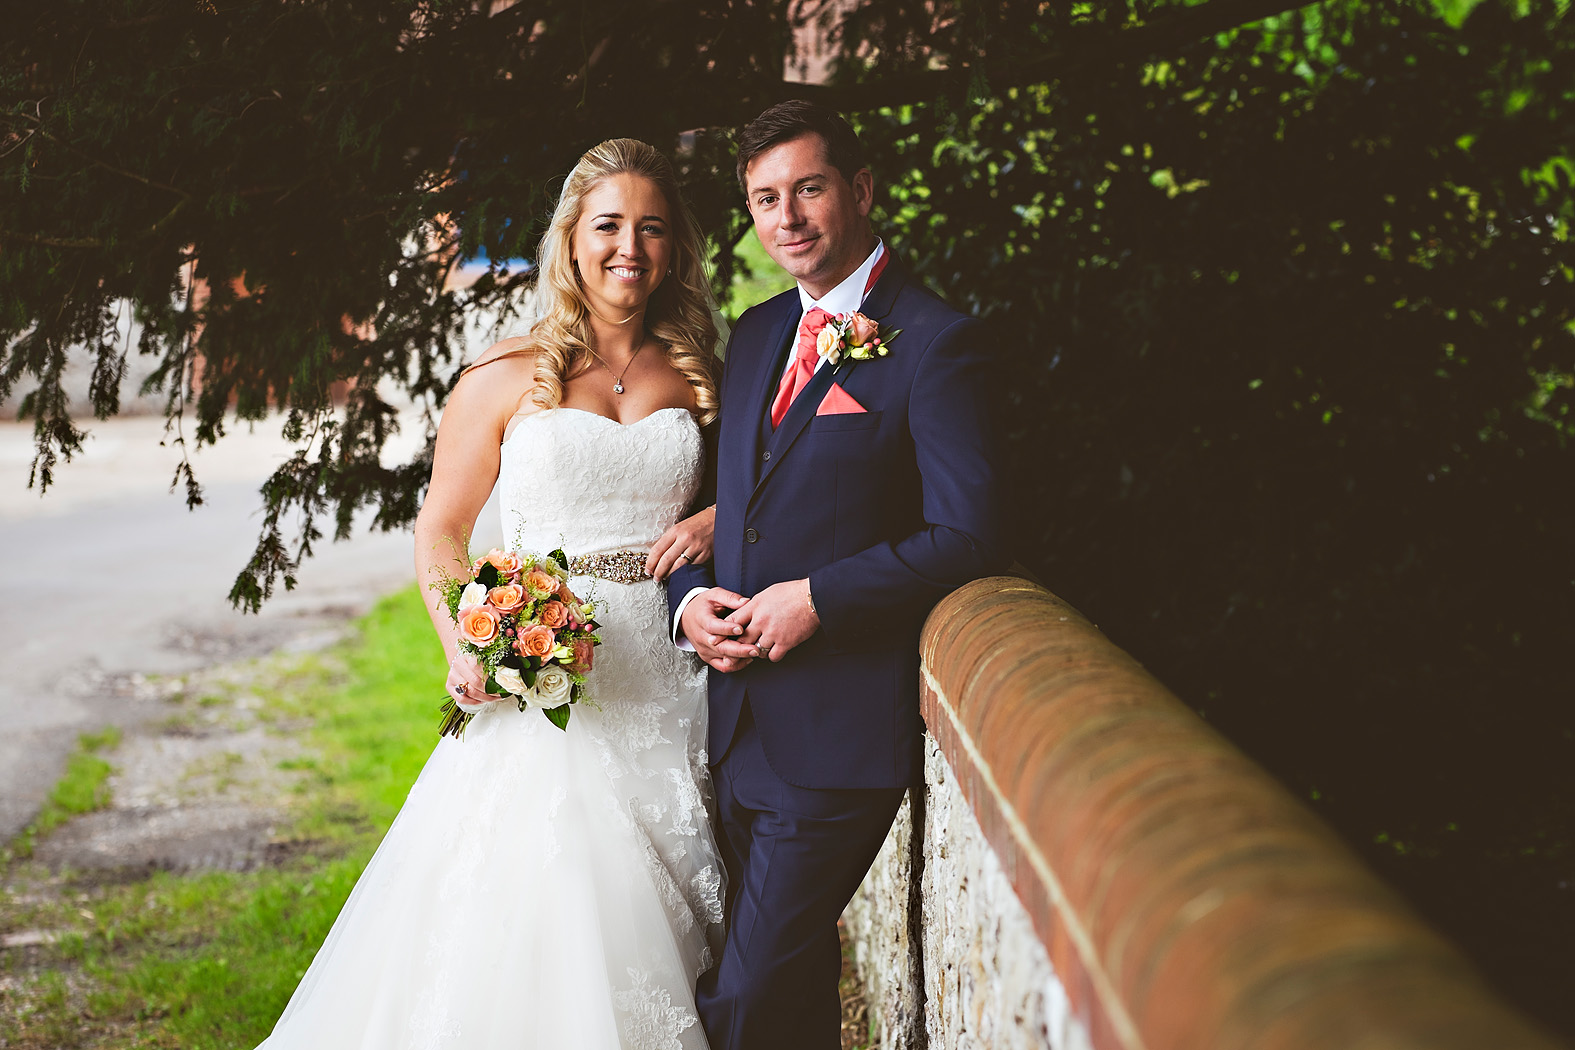 louise and david couple portrait at tithe barn